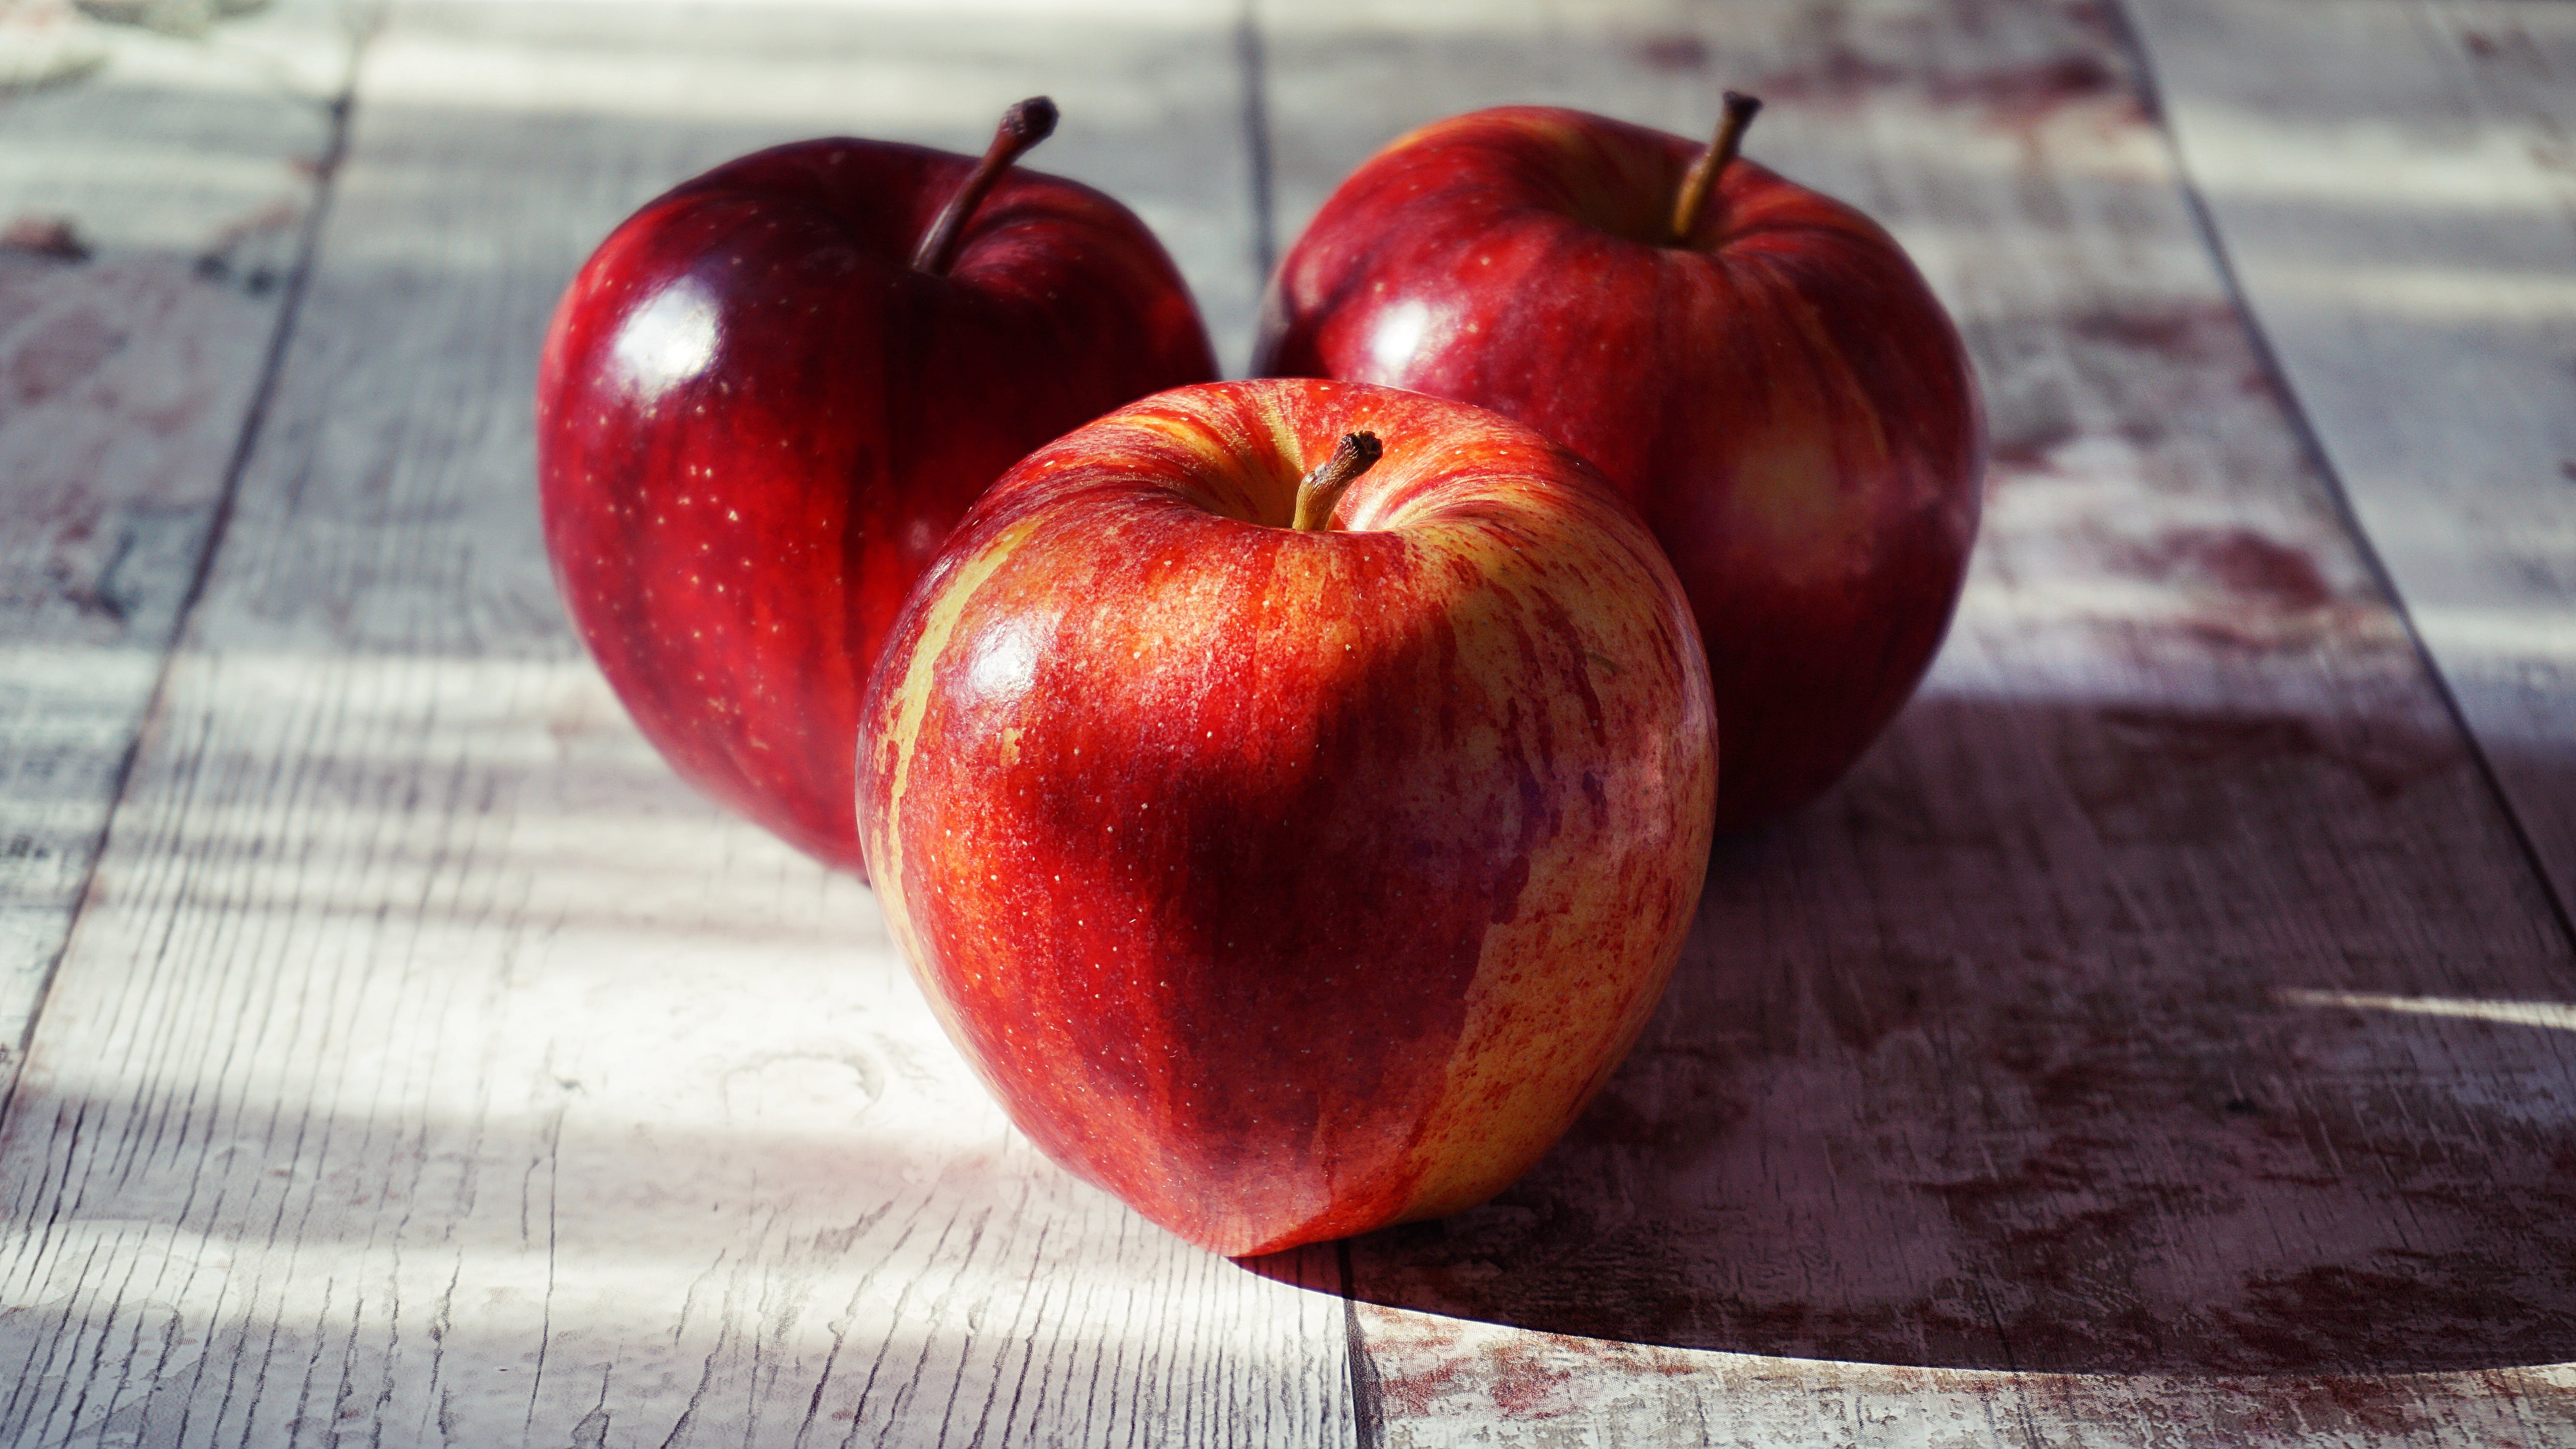 Three Red Apples on Brown Wooden Surface